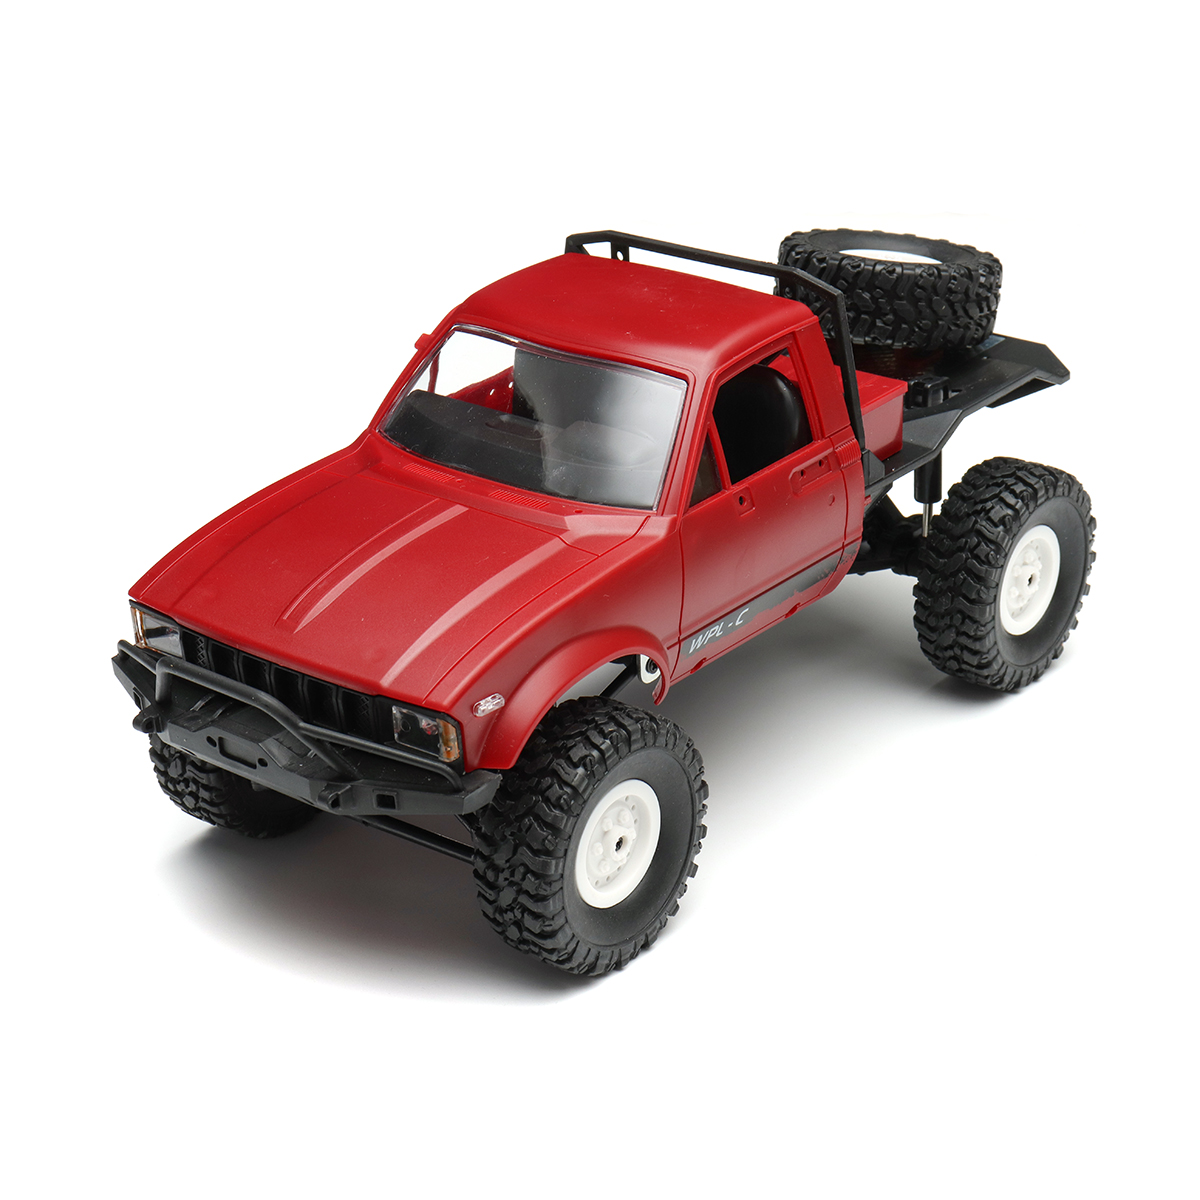 WPL C14 1:16 2.4G 4WD Off Road RC Military Car Rock Crawler Truck With Front LED RTR Toys